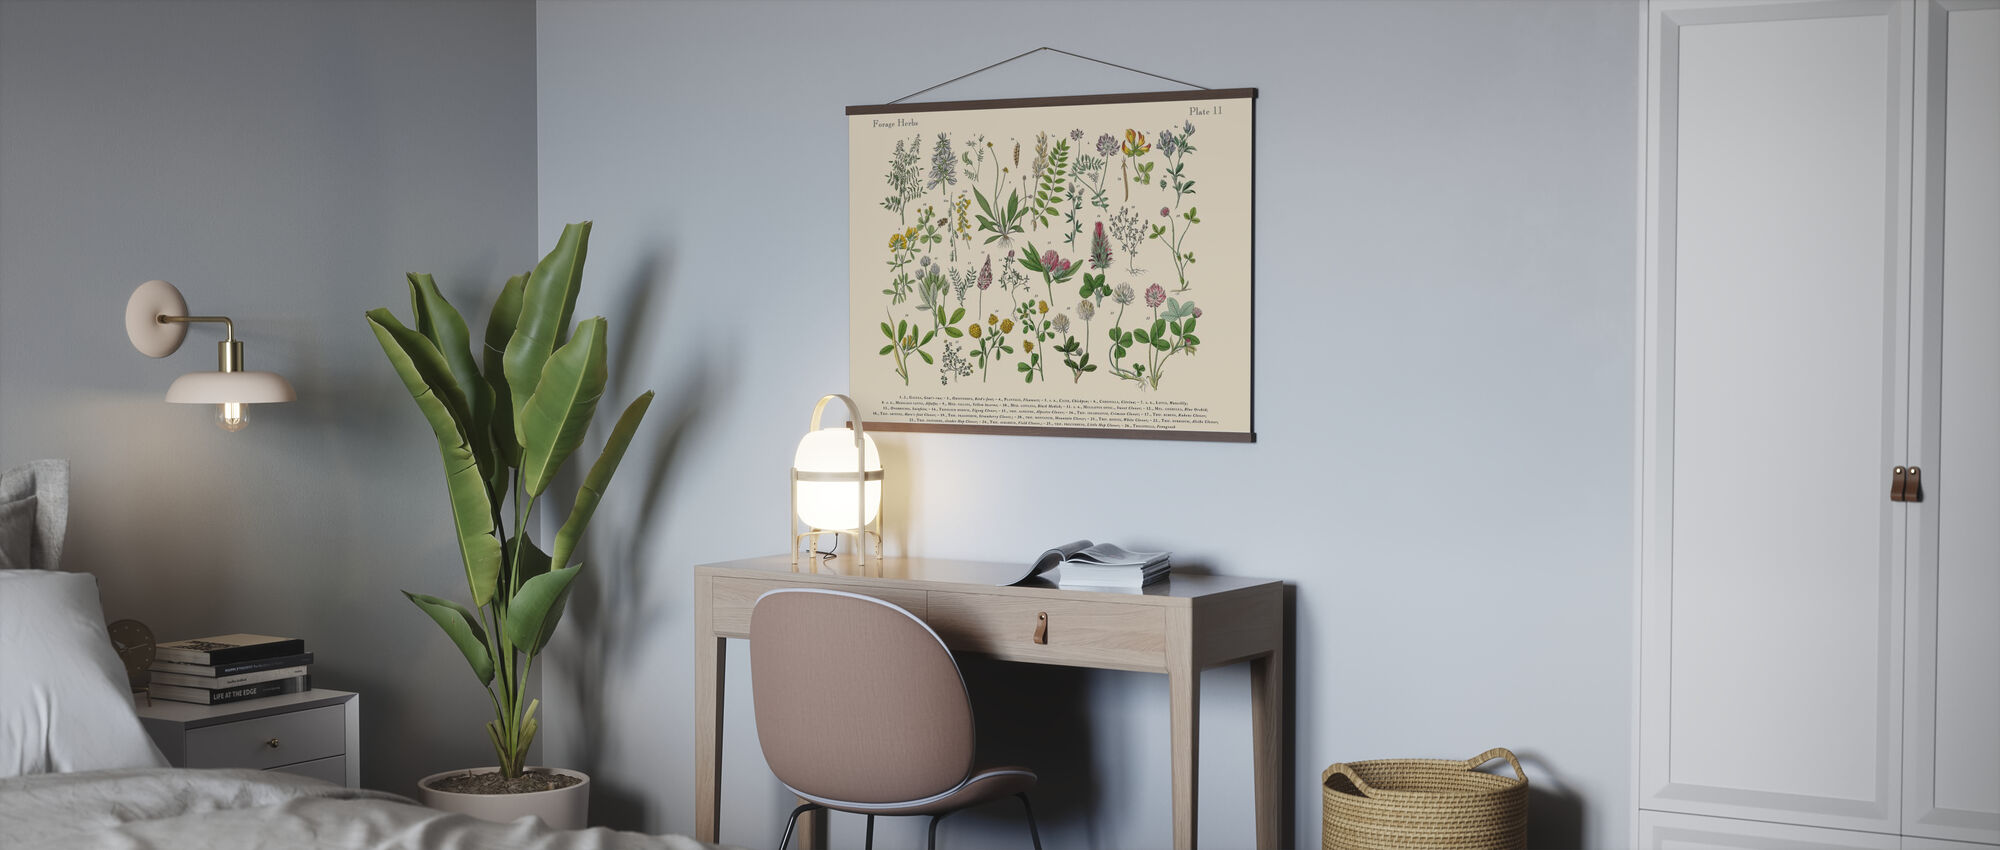 Herbs and Spices - Poster - Office